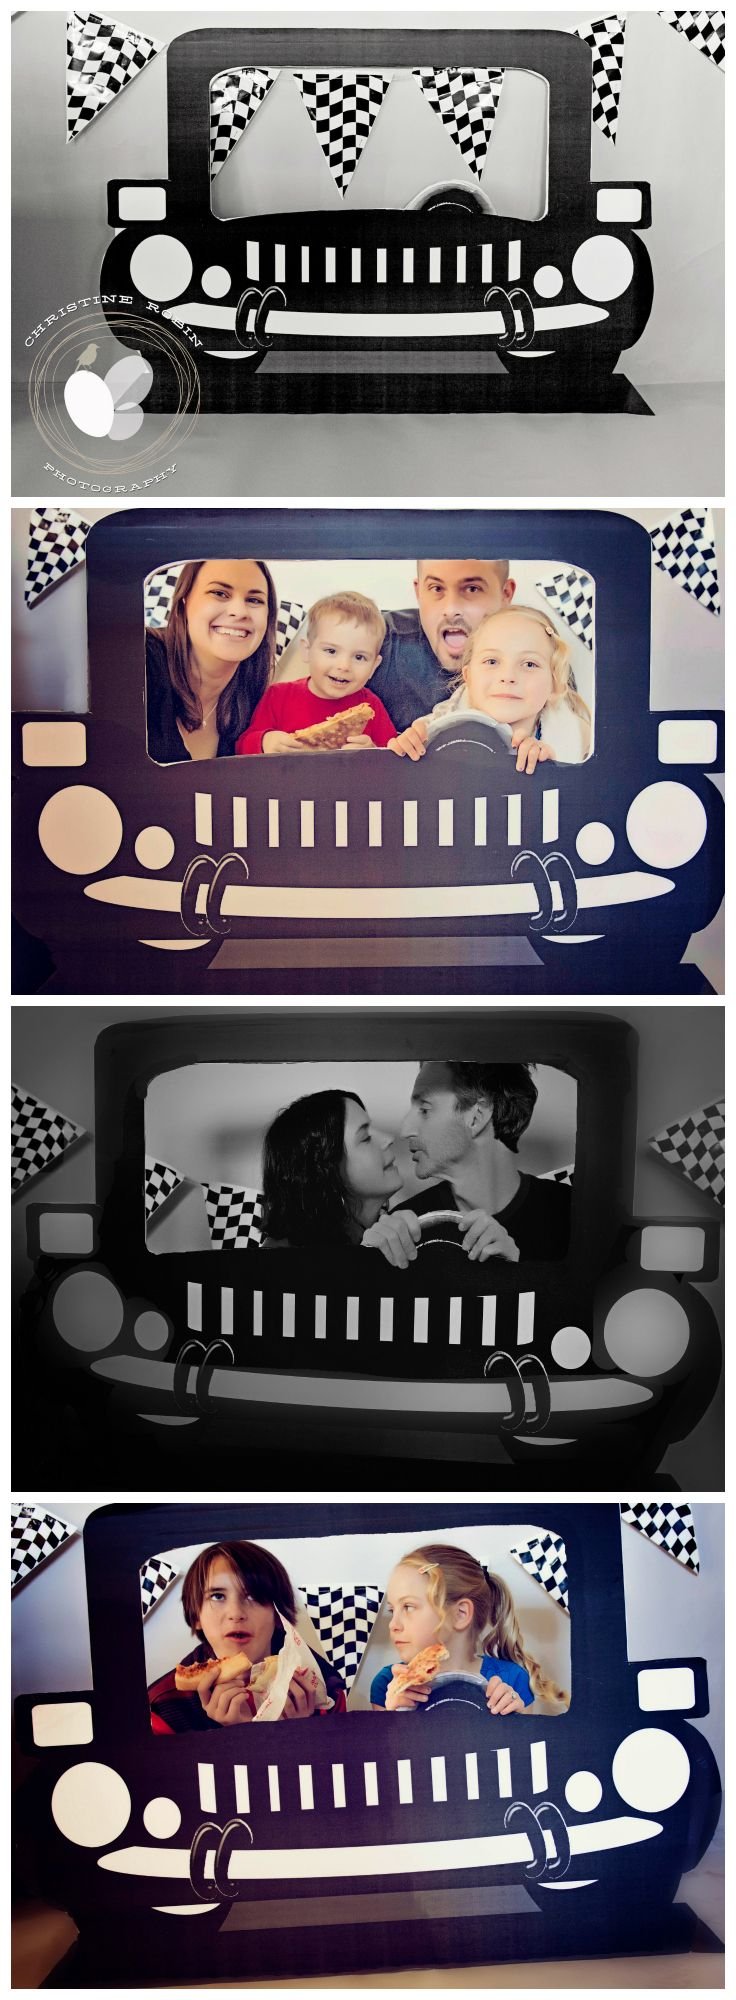 Honk Honk! Beep Beep! Another Custom Photobooth by Christine Robin Photography! #photobooth #cars #disney #birthdayboy #birthdayparty #turningtwo